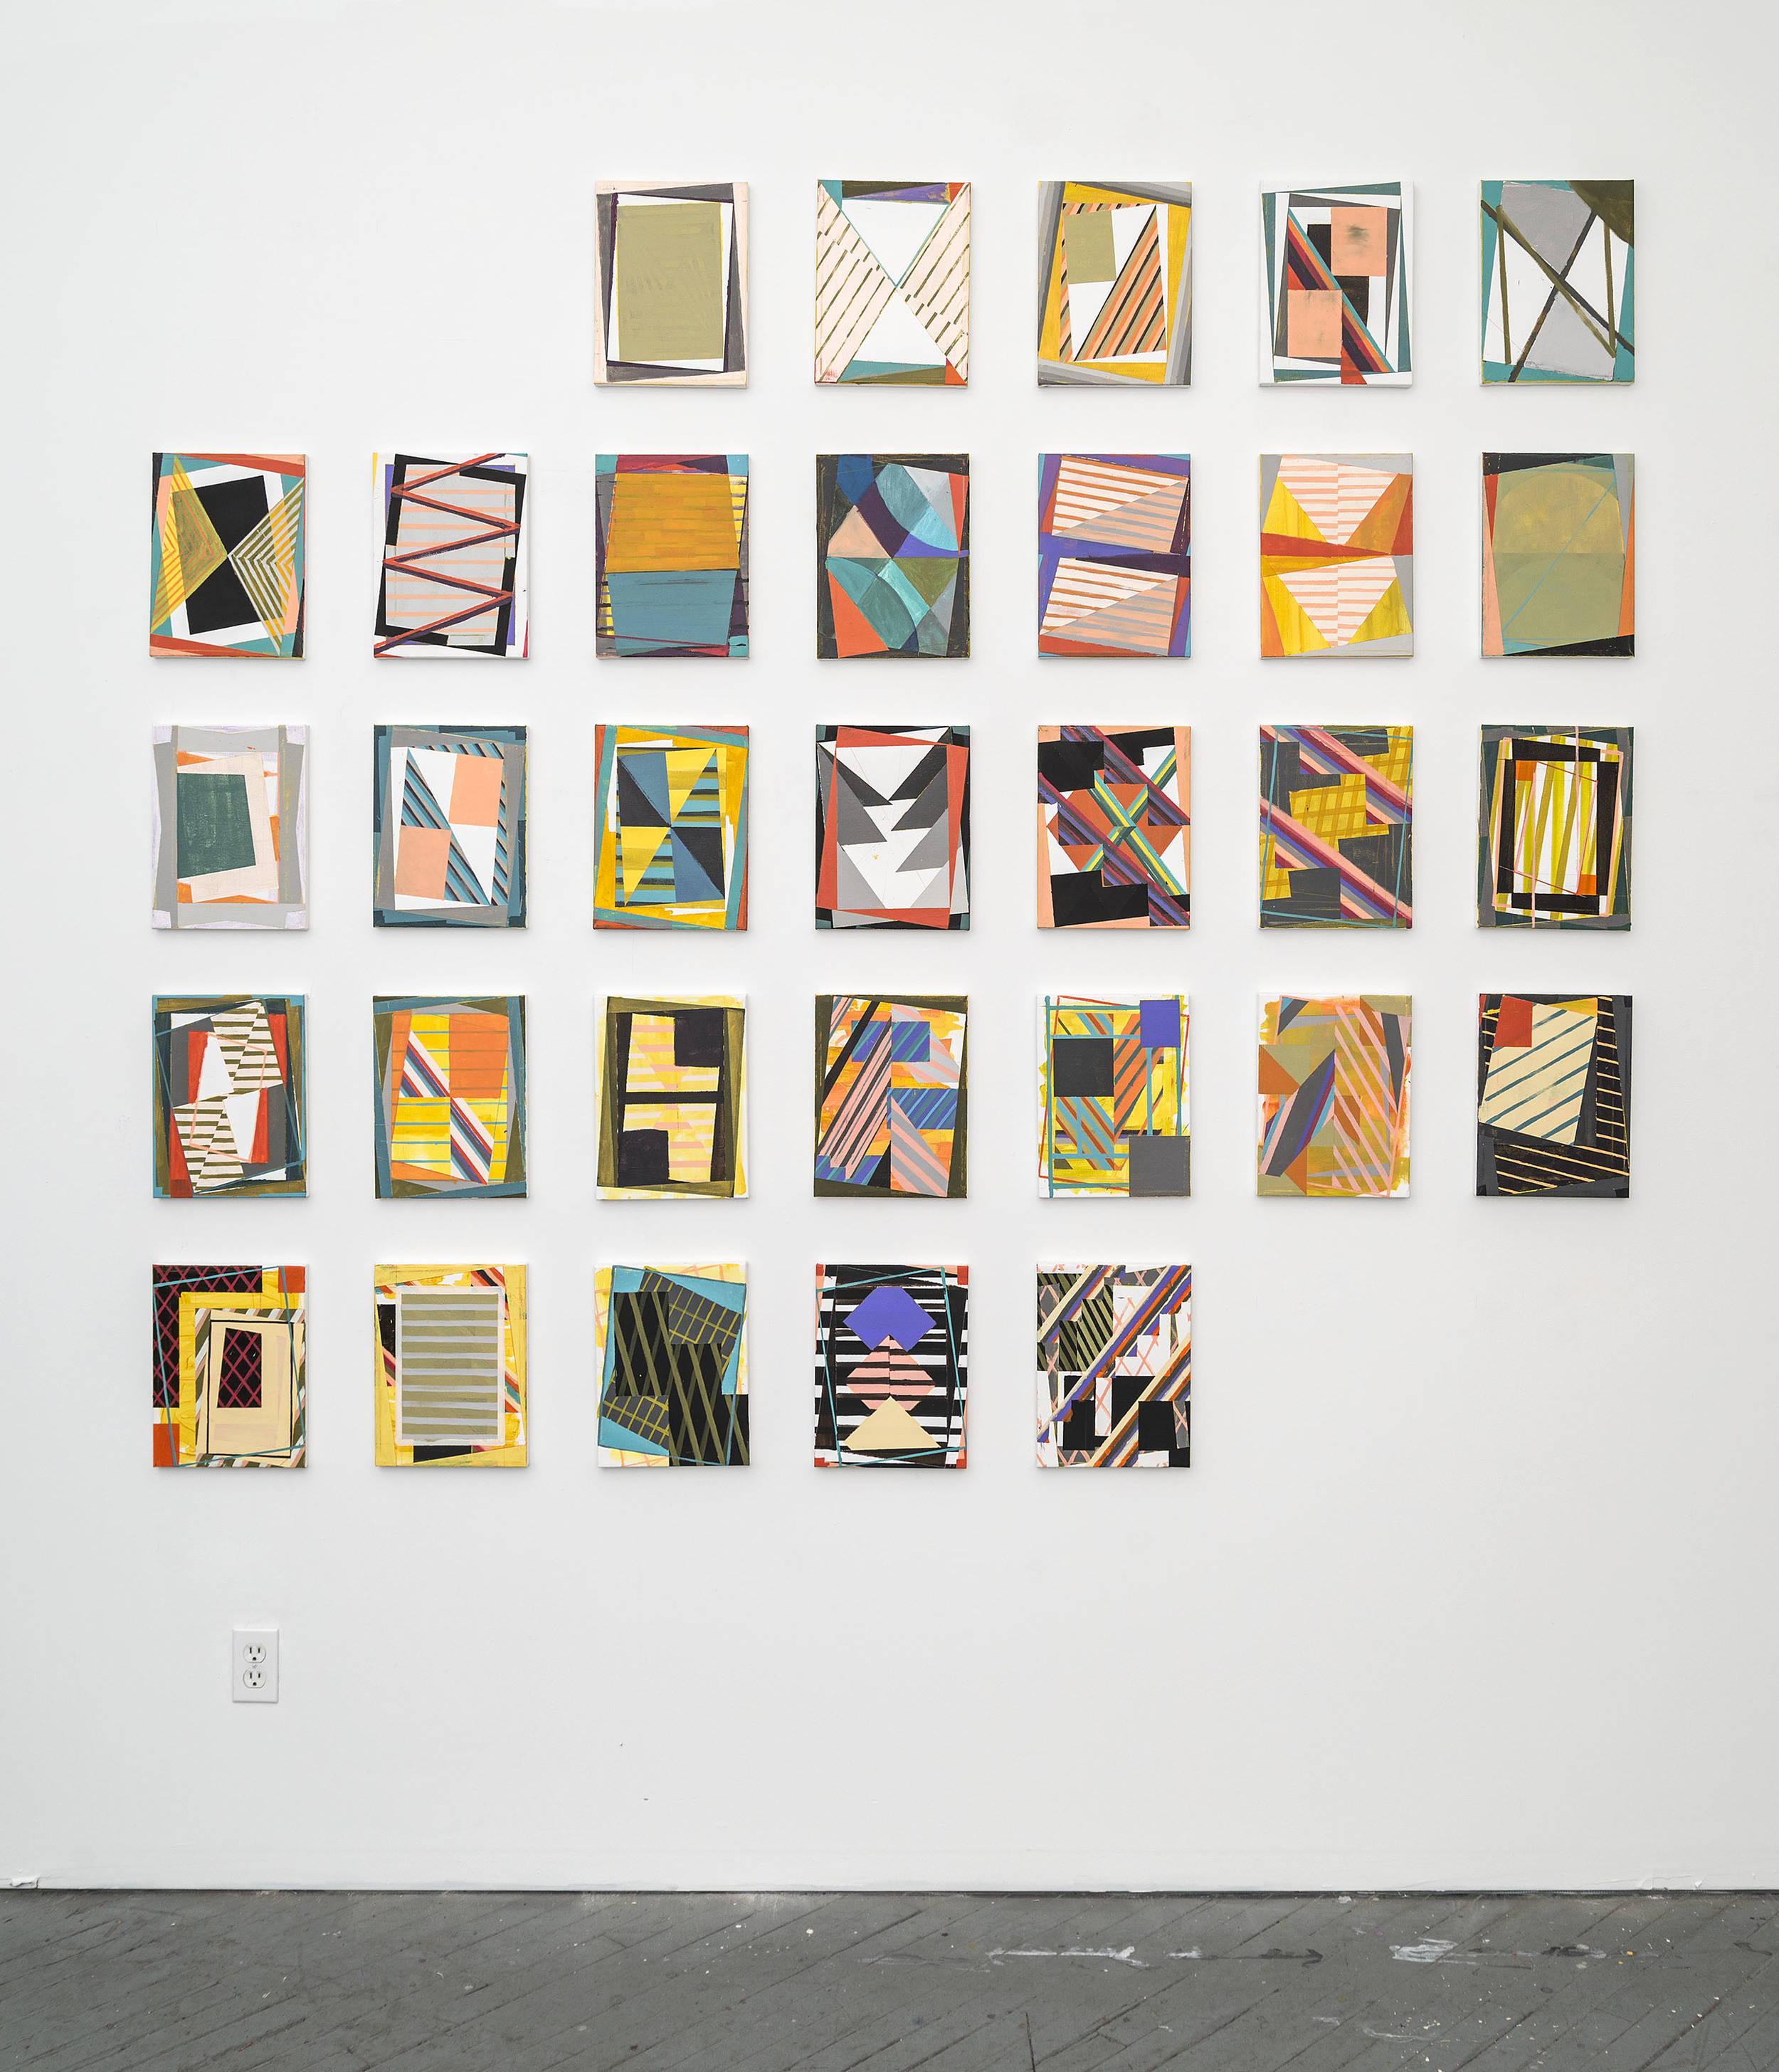 Yearbook (March), 2016,Acrylic and colored pencil on 31 canvases,12 x 9 inches each